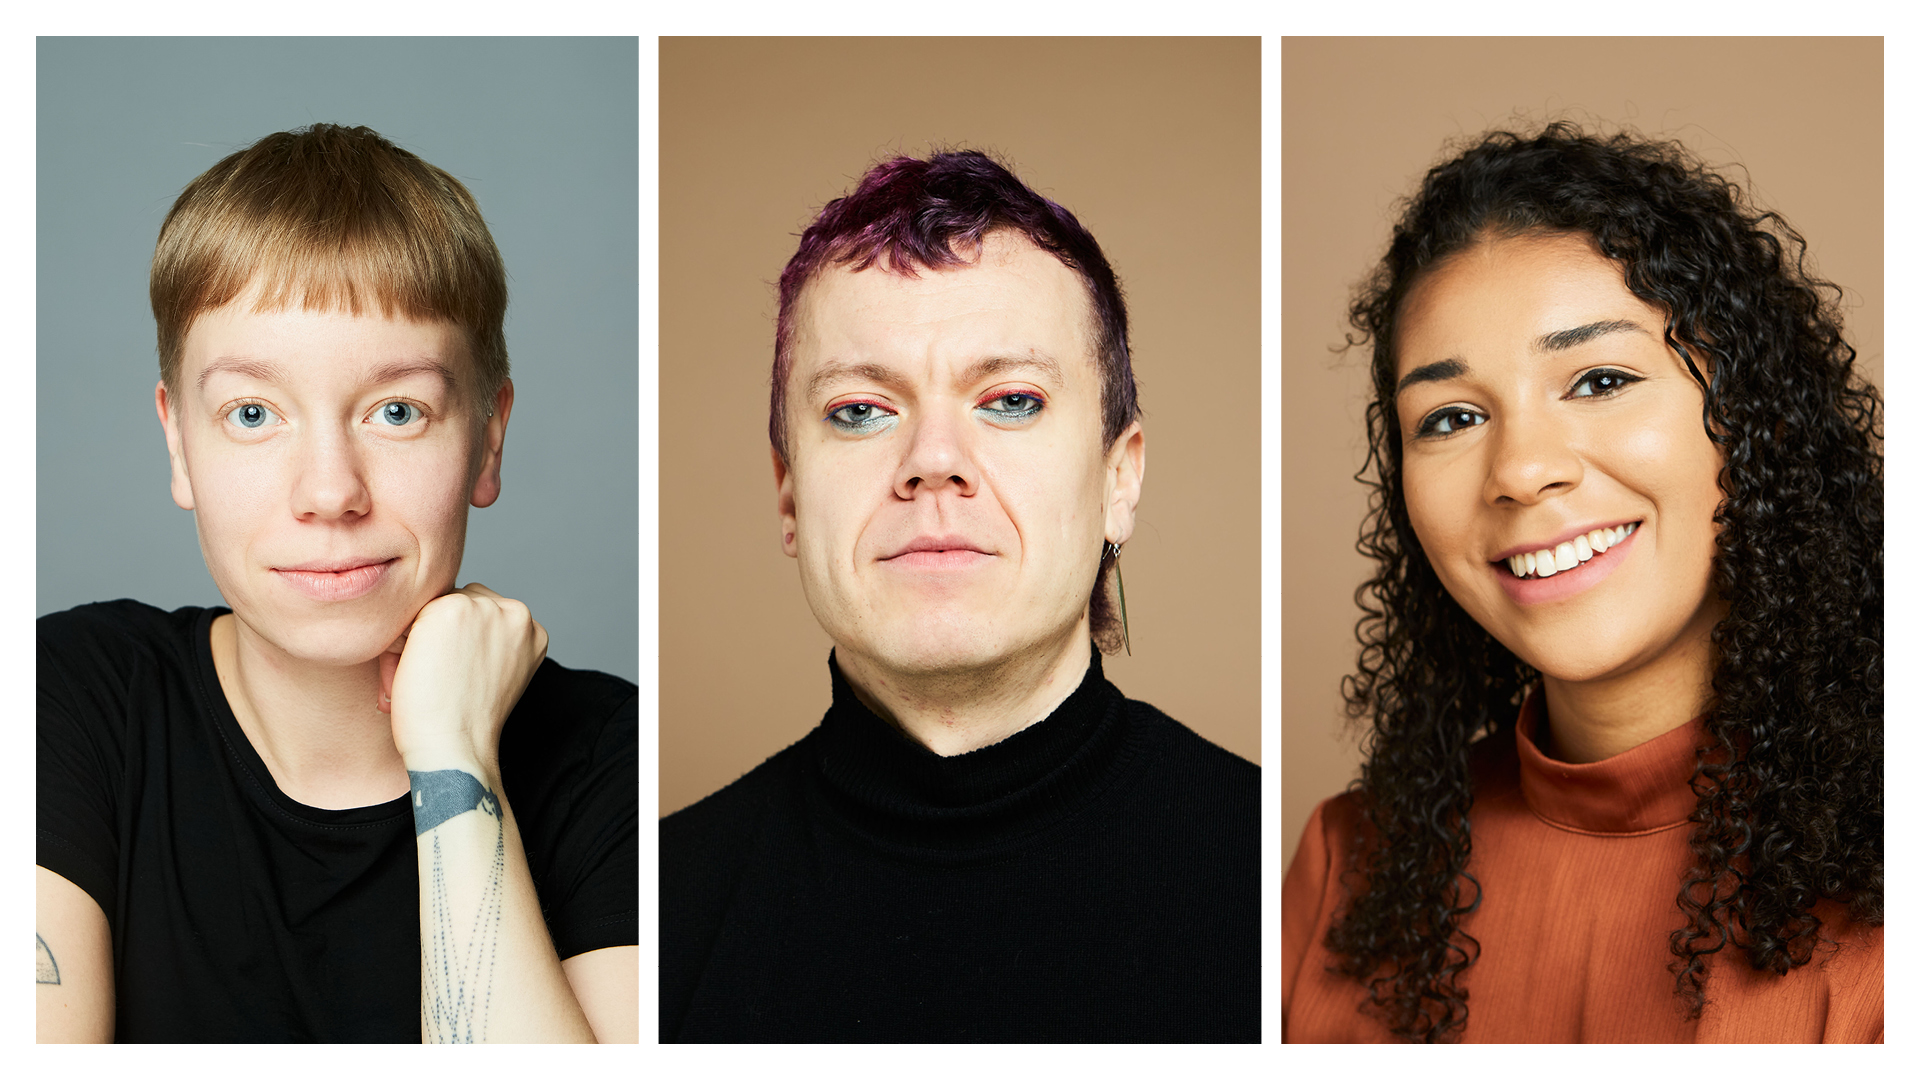 portraits of three students working for the campaign